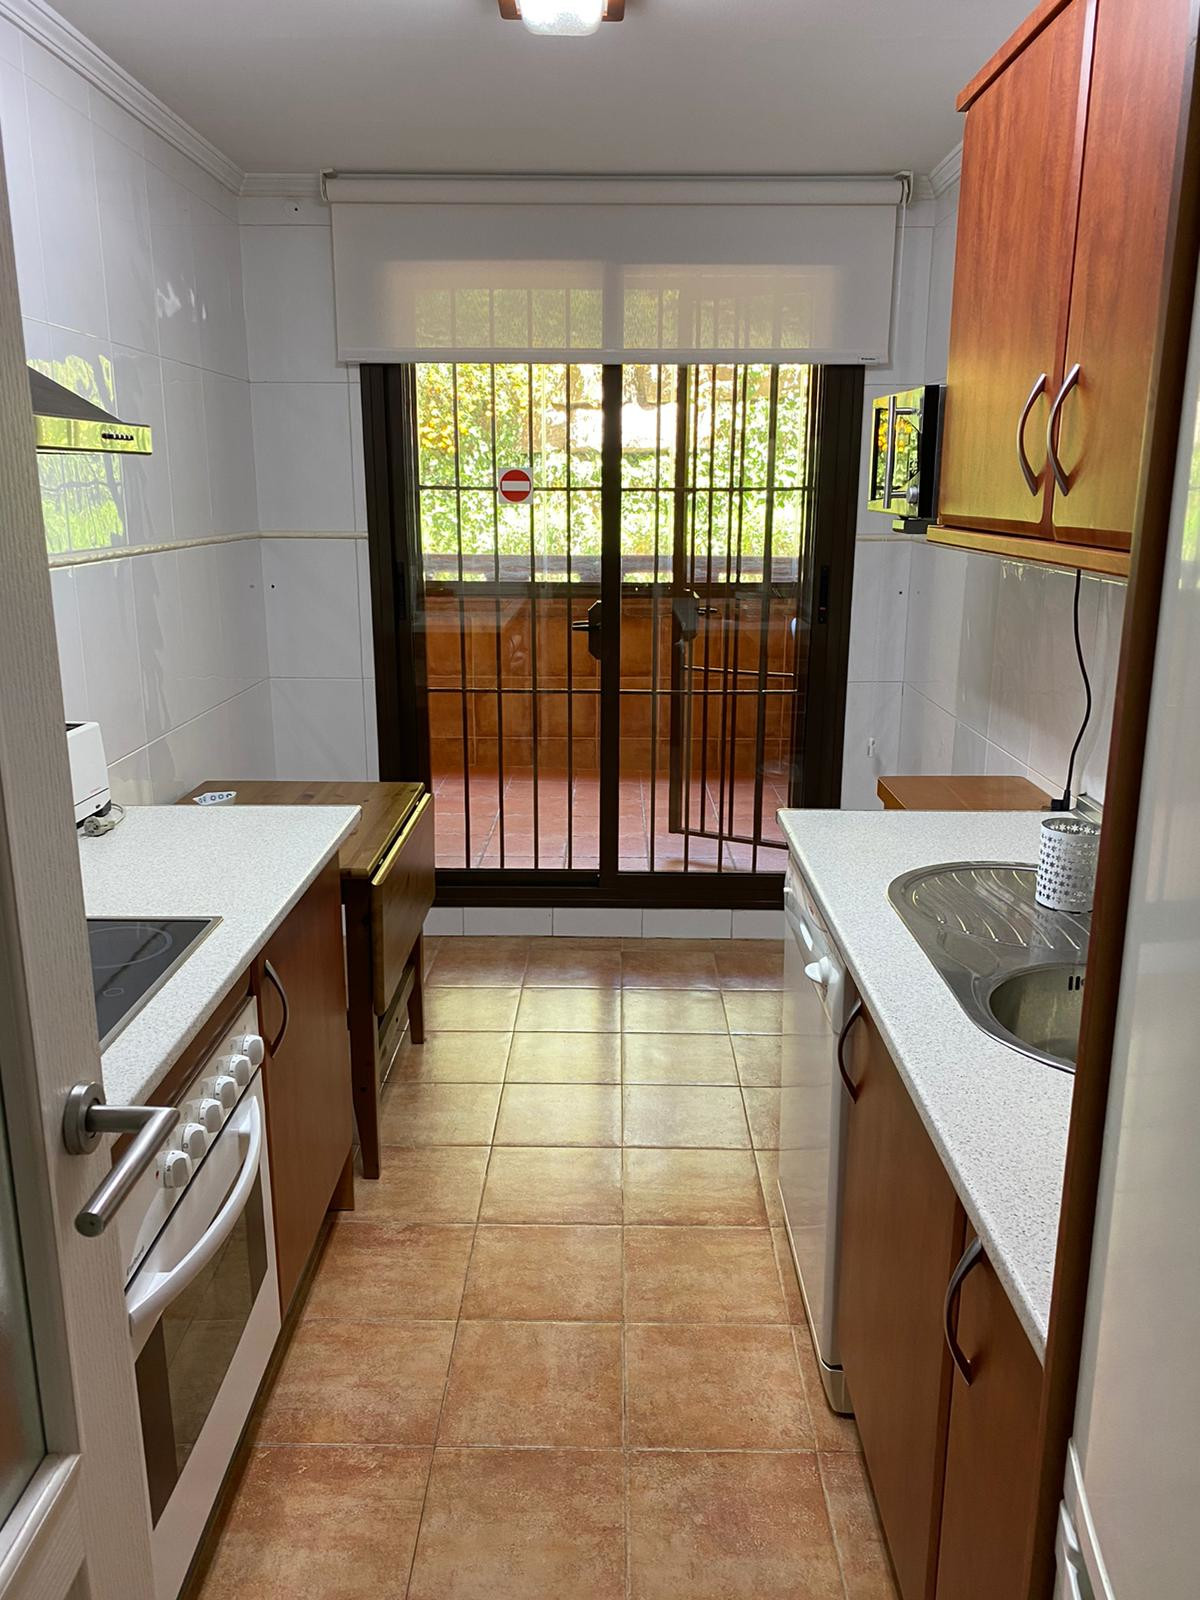 2 Bedroom Apartment for sale The Golden Mile